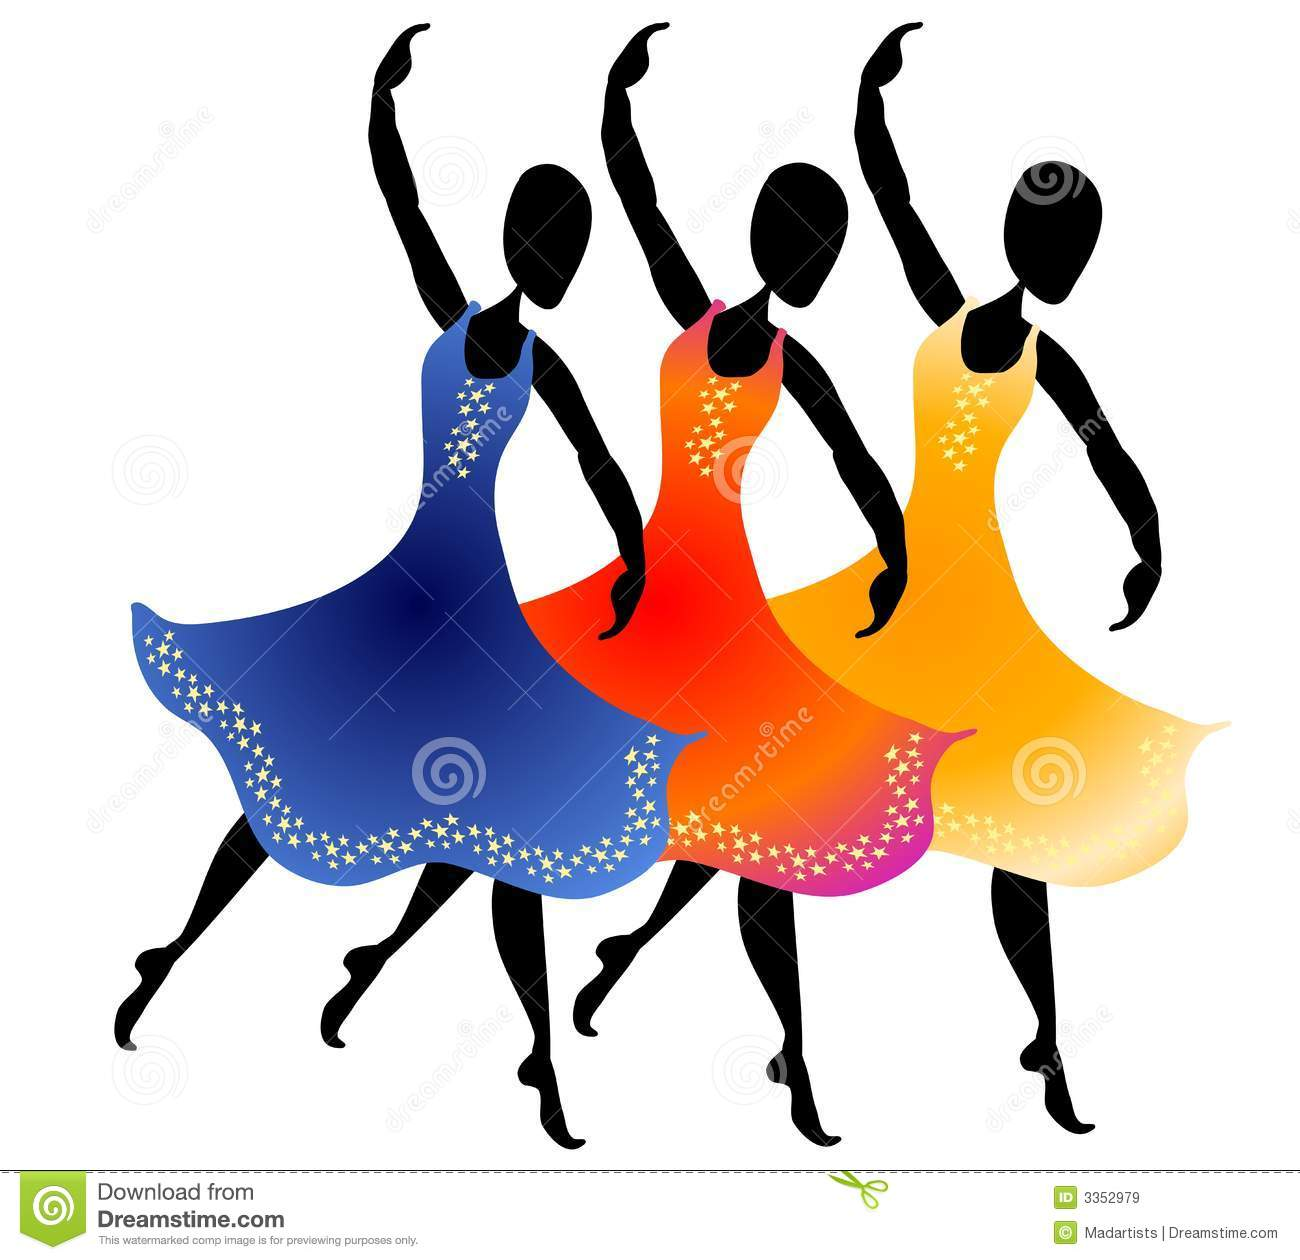 Stock clipart free download graphic black and white stock 3 Women Dancing Clip Art Royalty Free Stock Images - Image: 3352979 graphic black and white stock